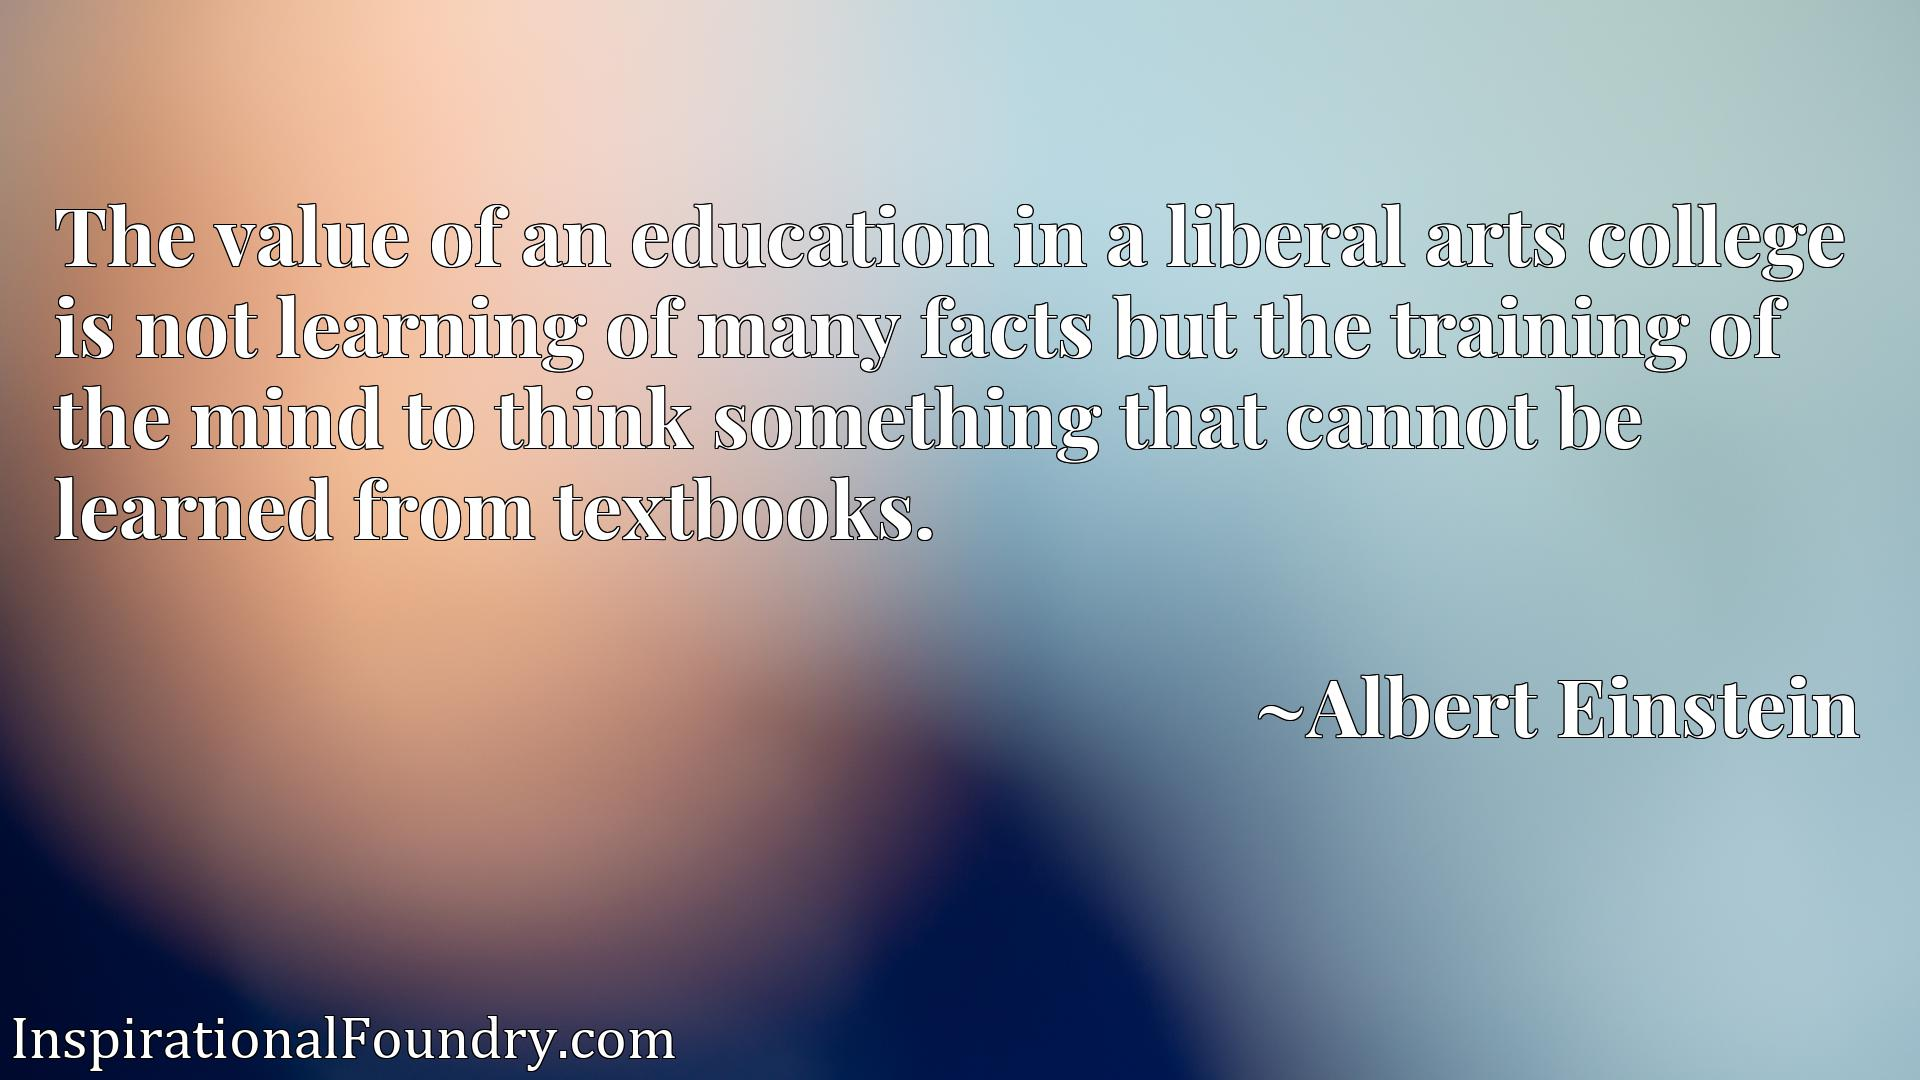 The value of an education in a liberal arts college is not learning of many facts but the training of the mind to think something that cannot be learned from textbooks.